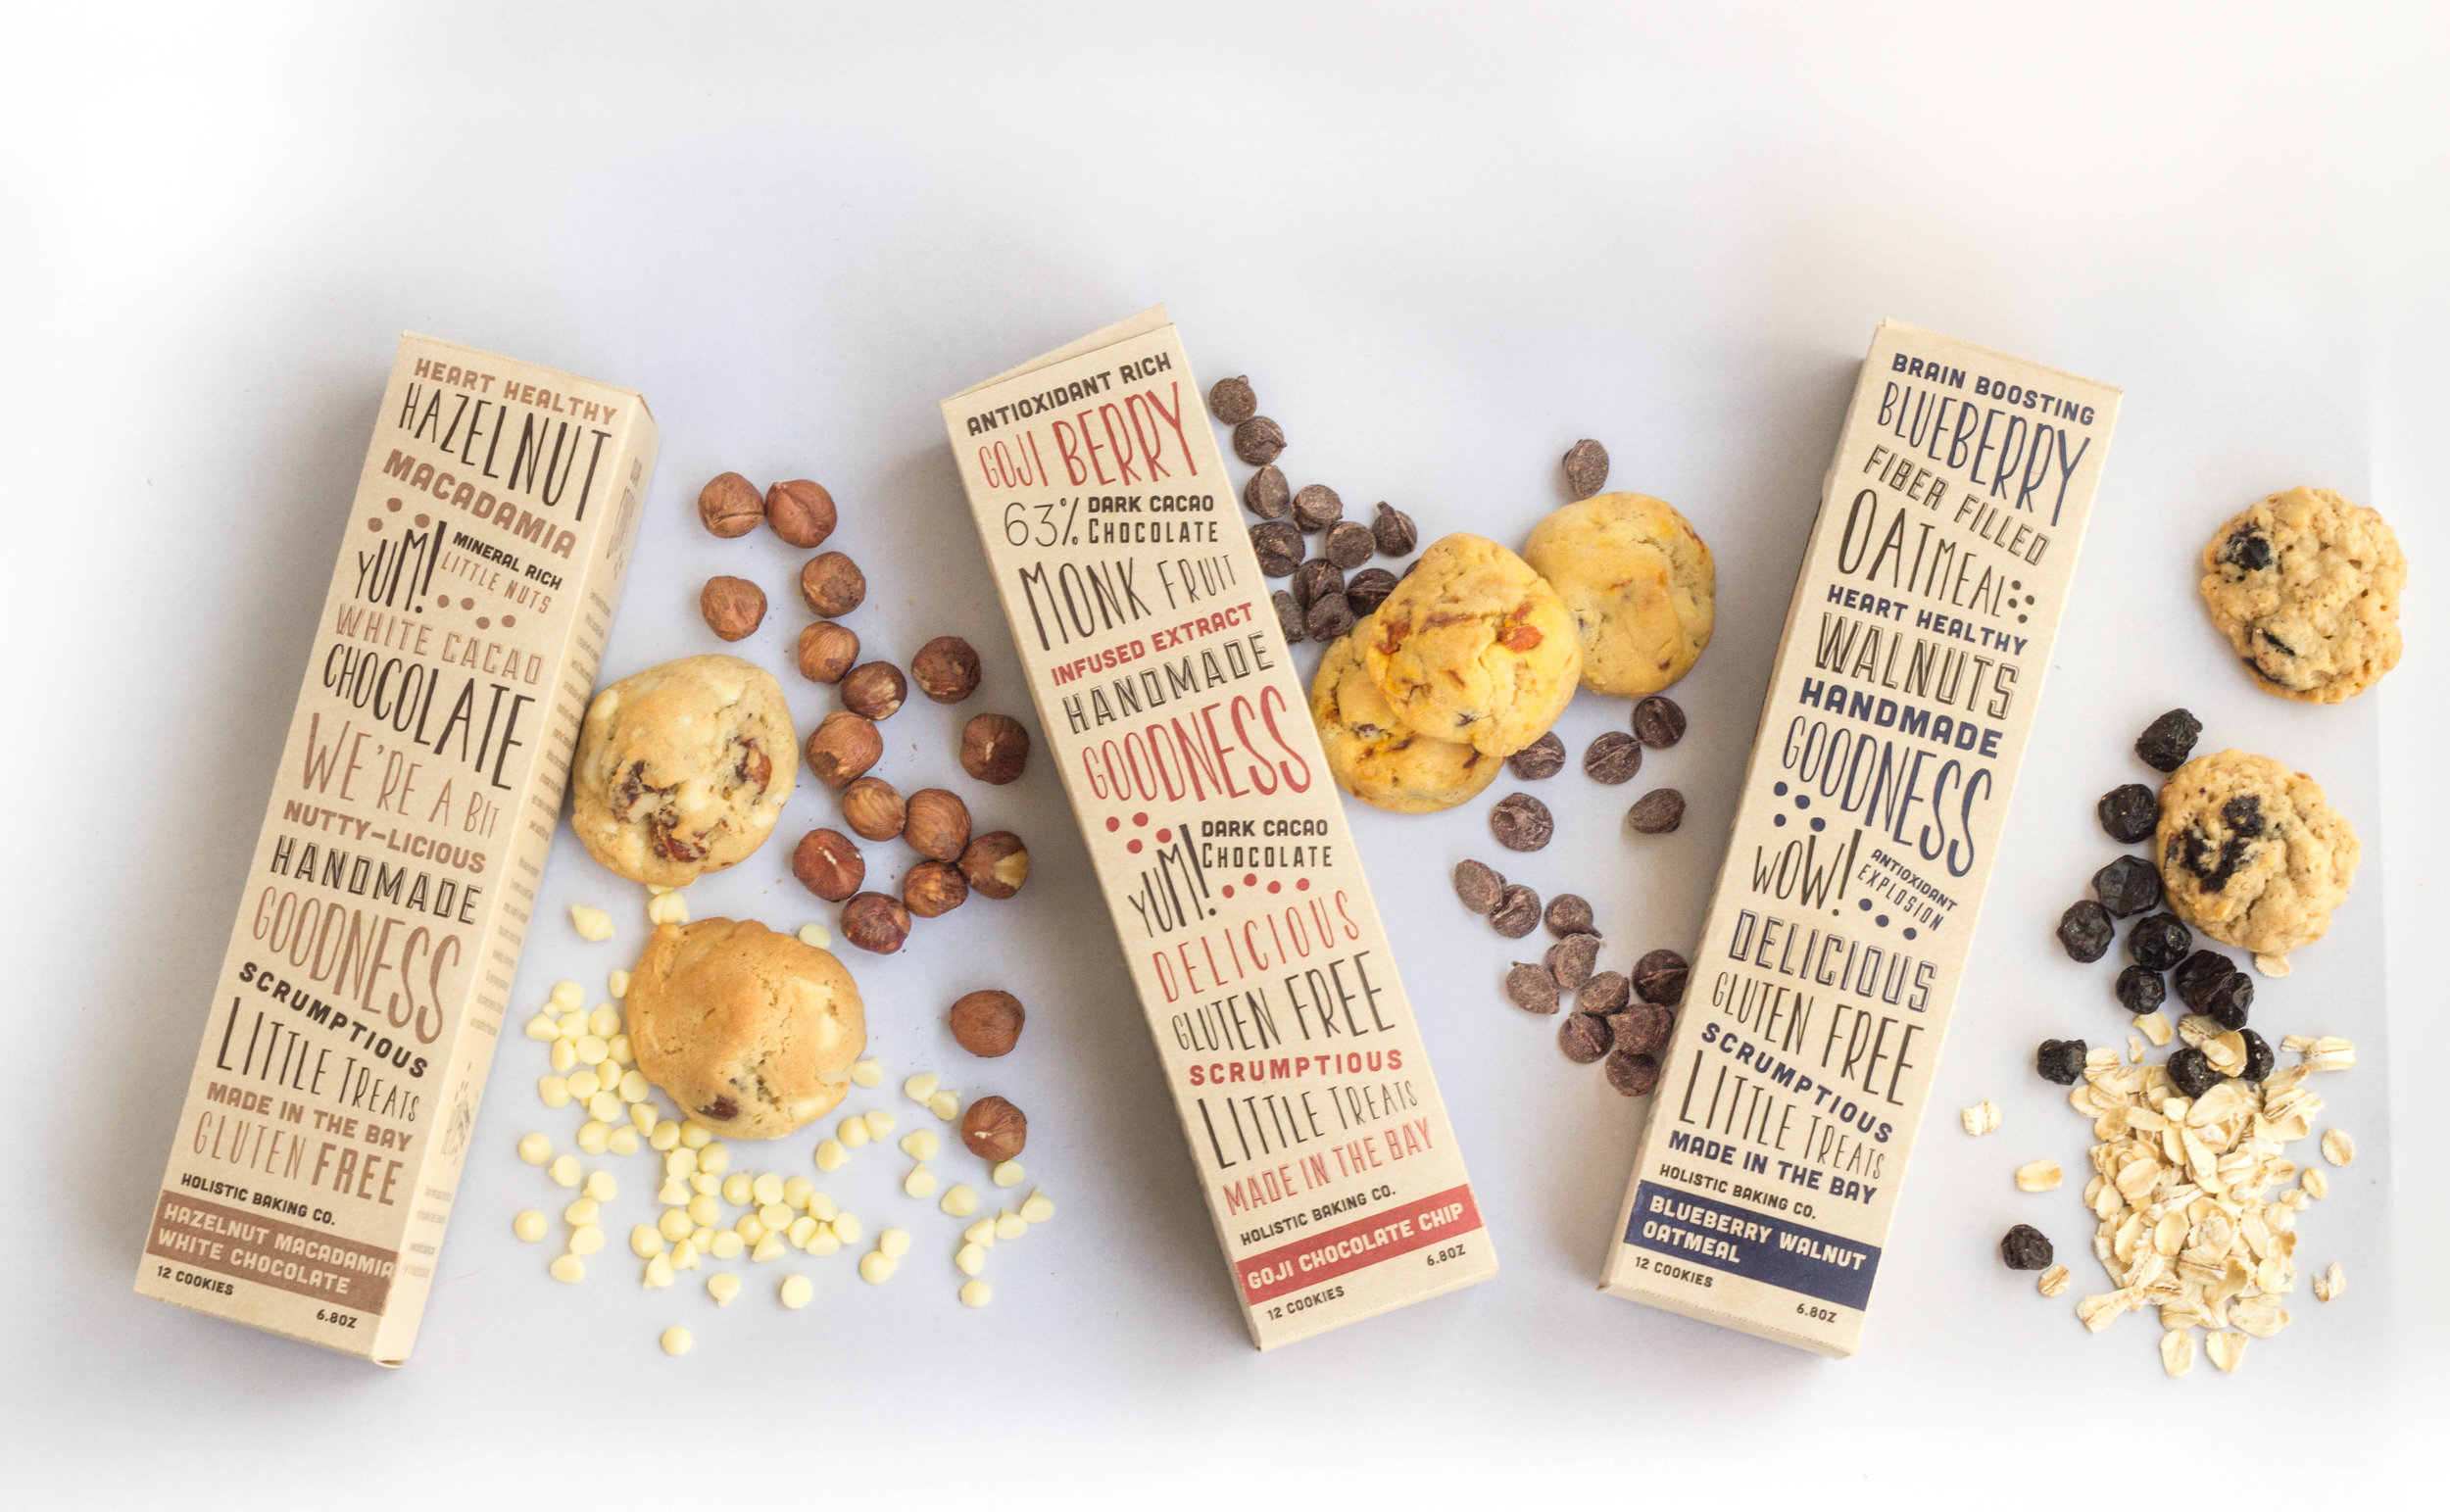 Concept Rustic Cookie Packaging with Bold, Playful Typography / World Brand & Packaging Design Society